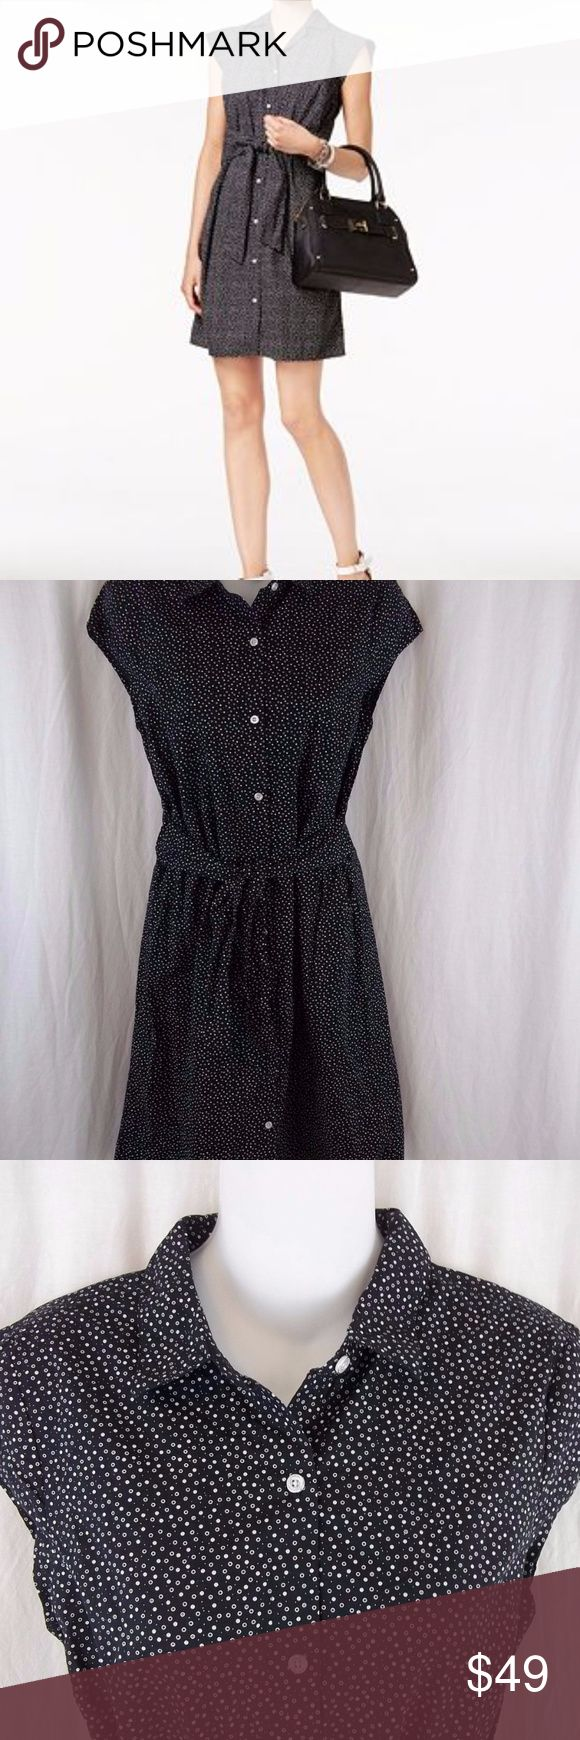 """Tommy Hilfiger Women's Shirtdress Black Dot New Tommy Hilfiger Women's Shirtdress Size S/P Button Down Black Dot Belted NWT New   Size: S/P Brand: Tommy Hilfiger Color: Black/White  Style: Shirt dress Neckline: Button front Sleeves: Cap sleeves Material: 100% Cotton Condition: New with tags, retails $79.50 Country of Manufacture: India  Measurements Length: 36"""" Underarm to underarm (laying flat): 18"""" Tommy Hilfiger Dresses Midi"""